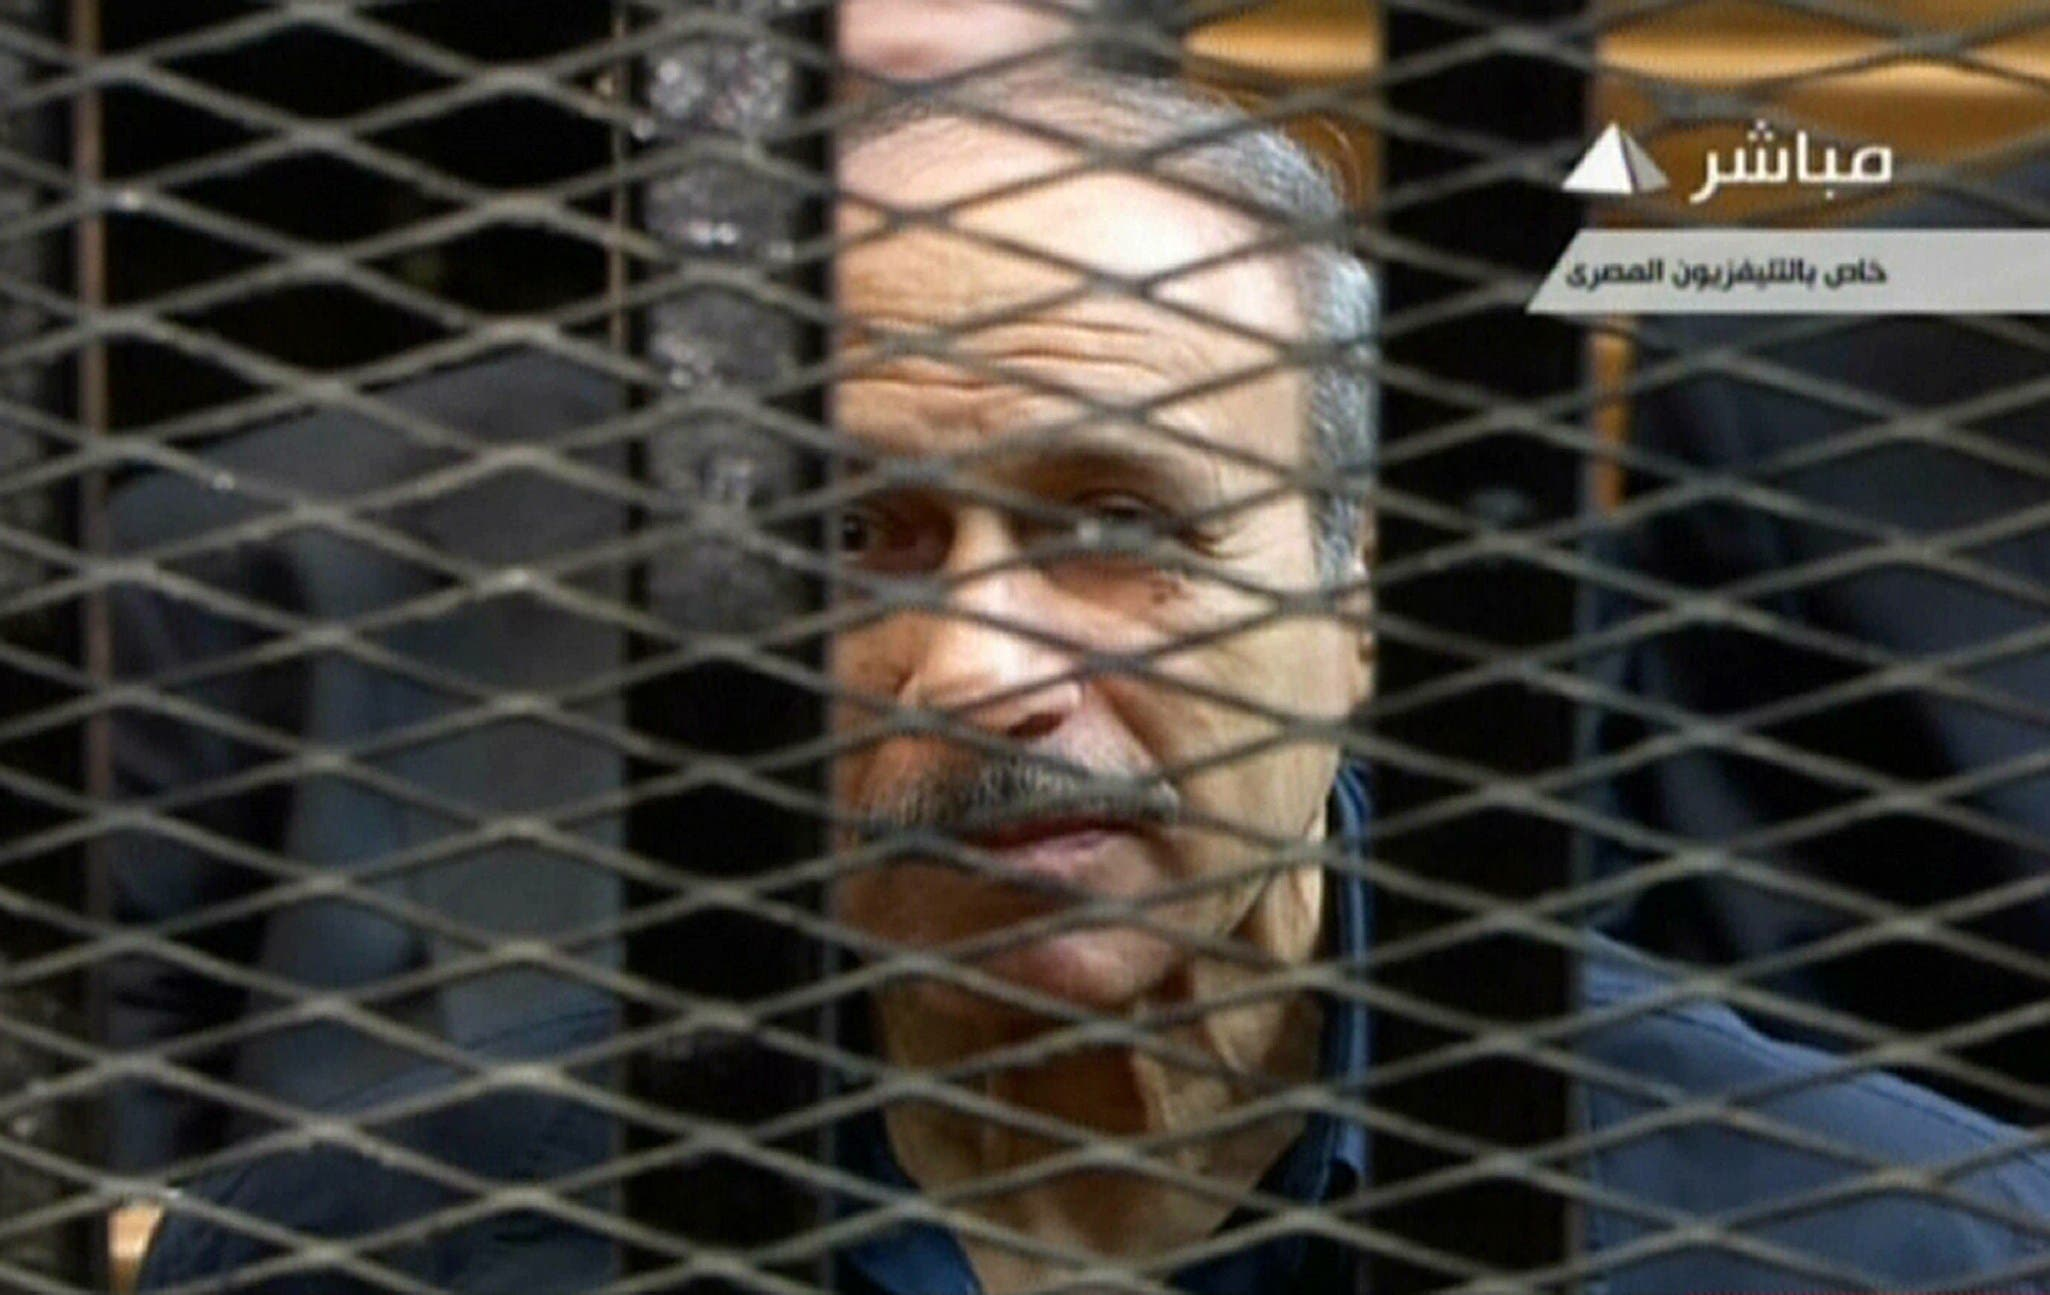 An image grab taken from Egyptian state TV shows former Egyptian interior minister Habib al-Adly behind bars during a retrial at the Police Academy in Cairo on April 13, 2013. AFP